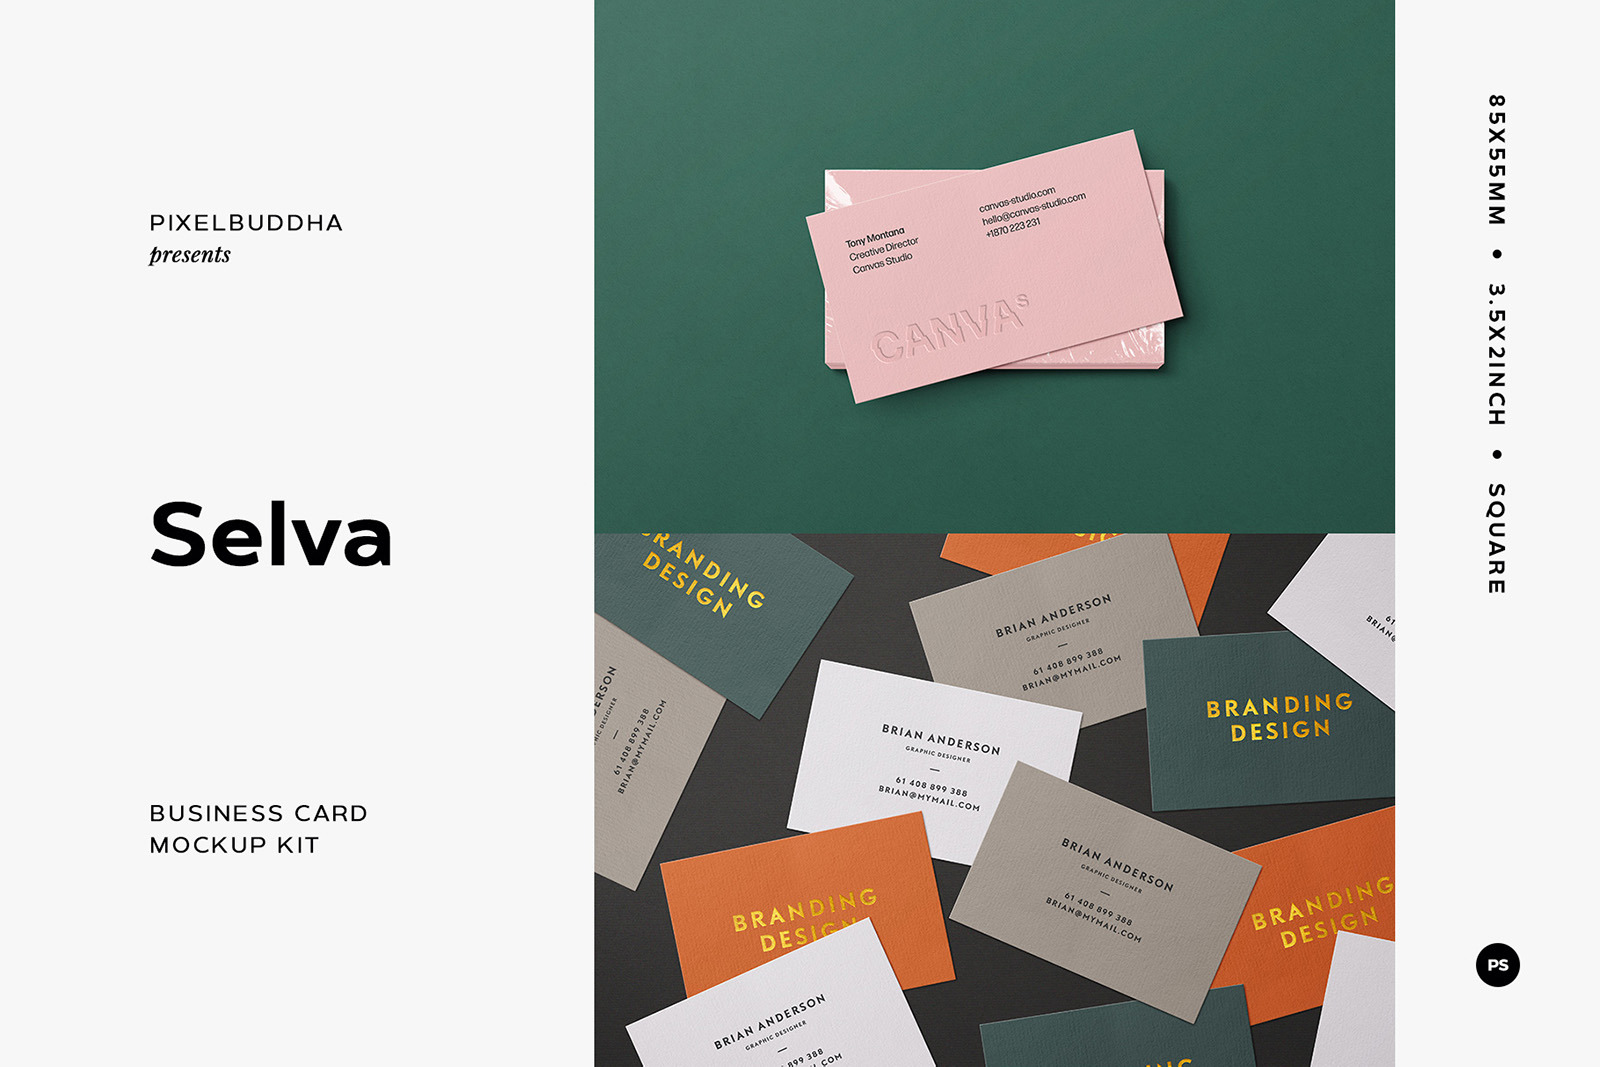 Selva Business Card Mockup Kit In Stationery Mockups On Yellow